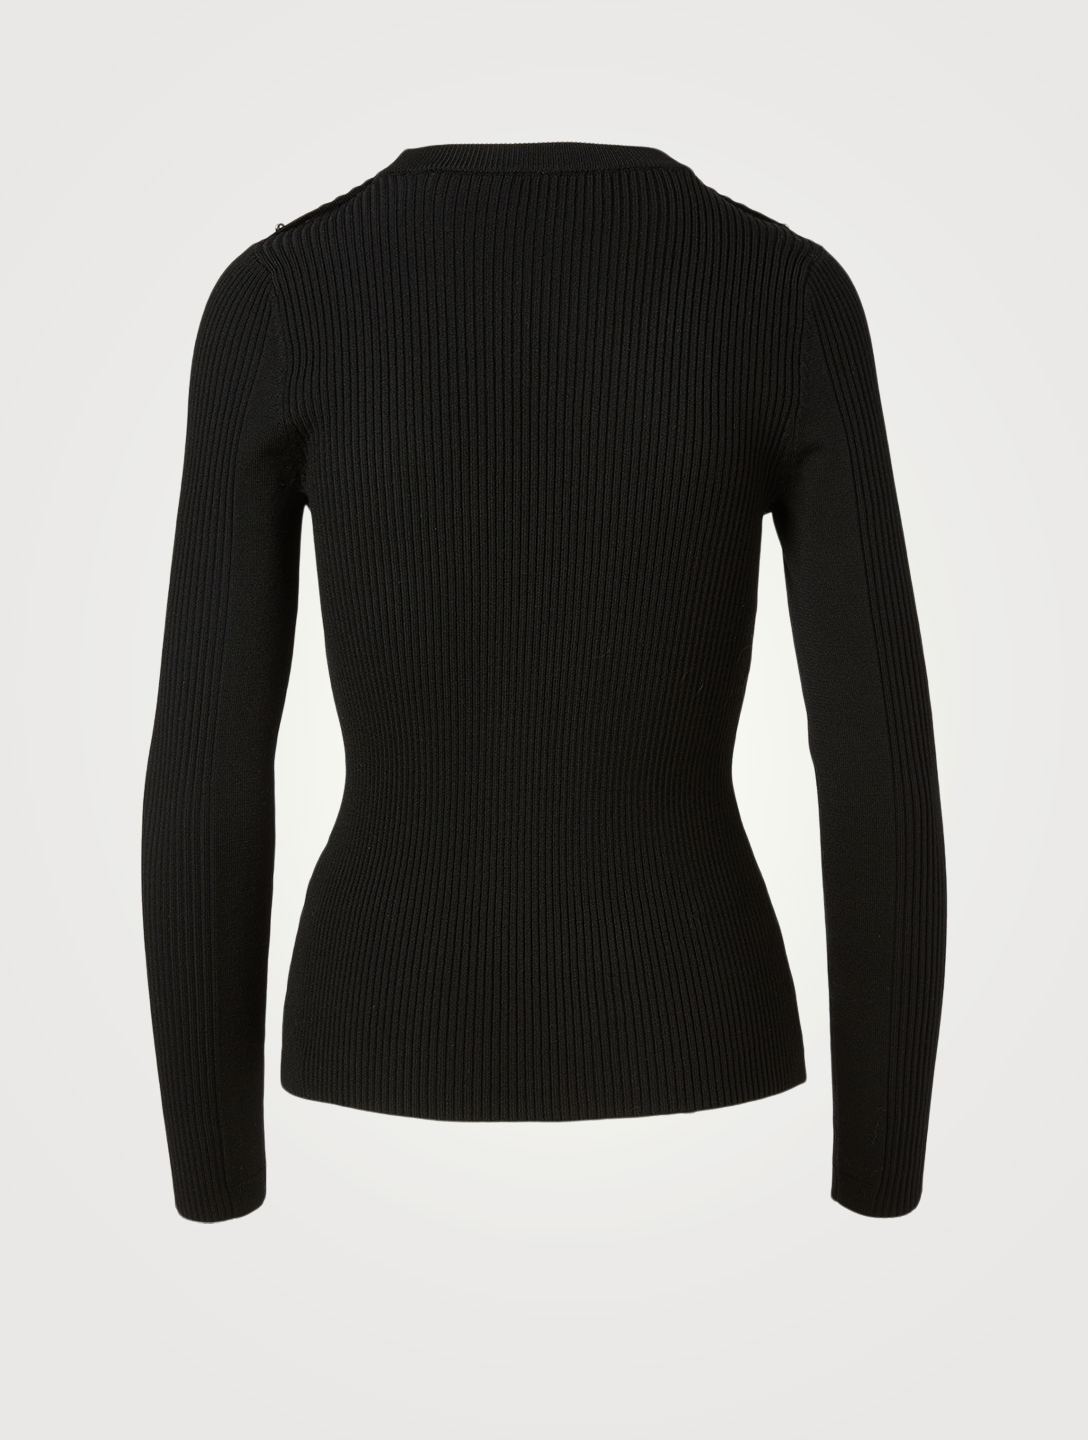 3.1 PHILLIP LIM Wool-Blend Ribbed Knit Top Women's Black